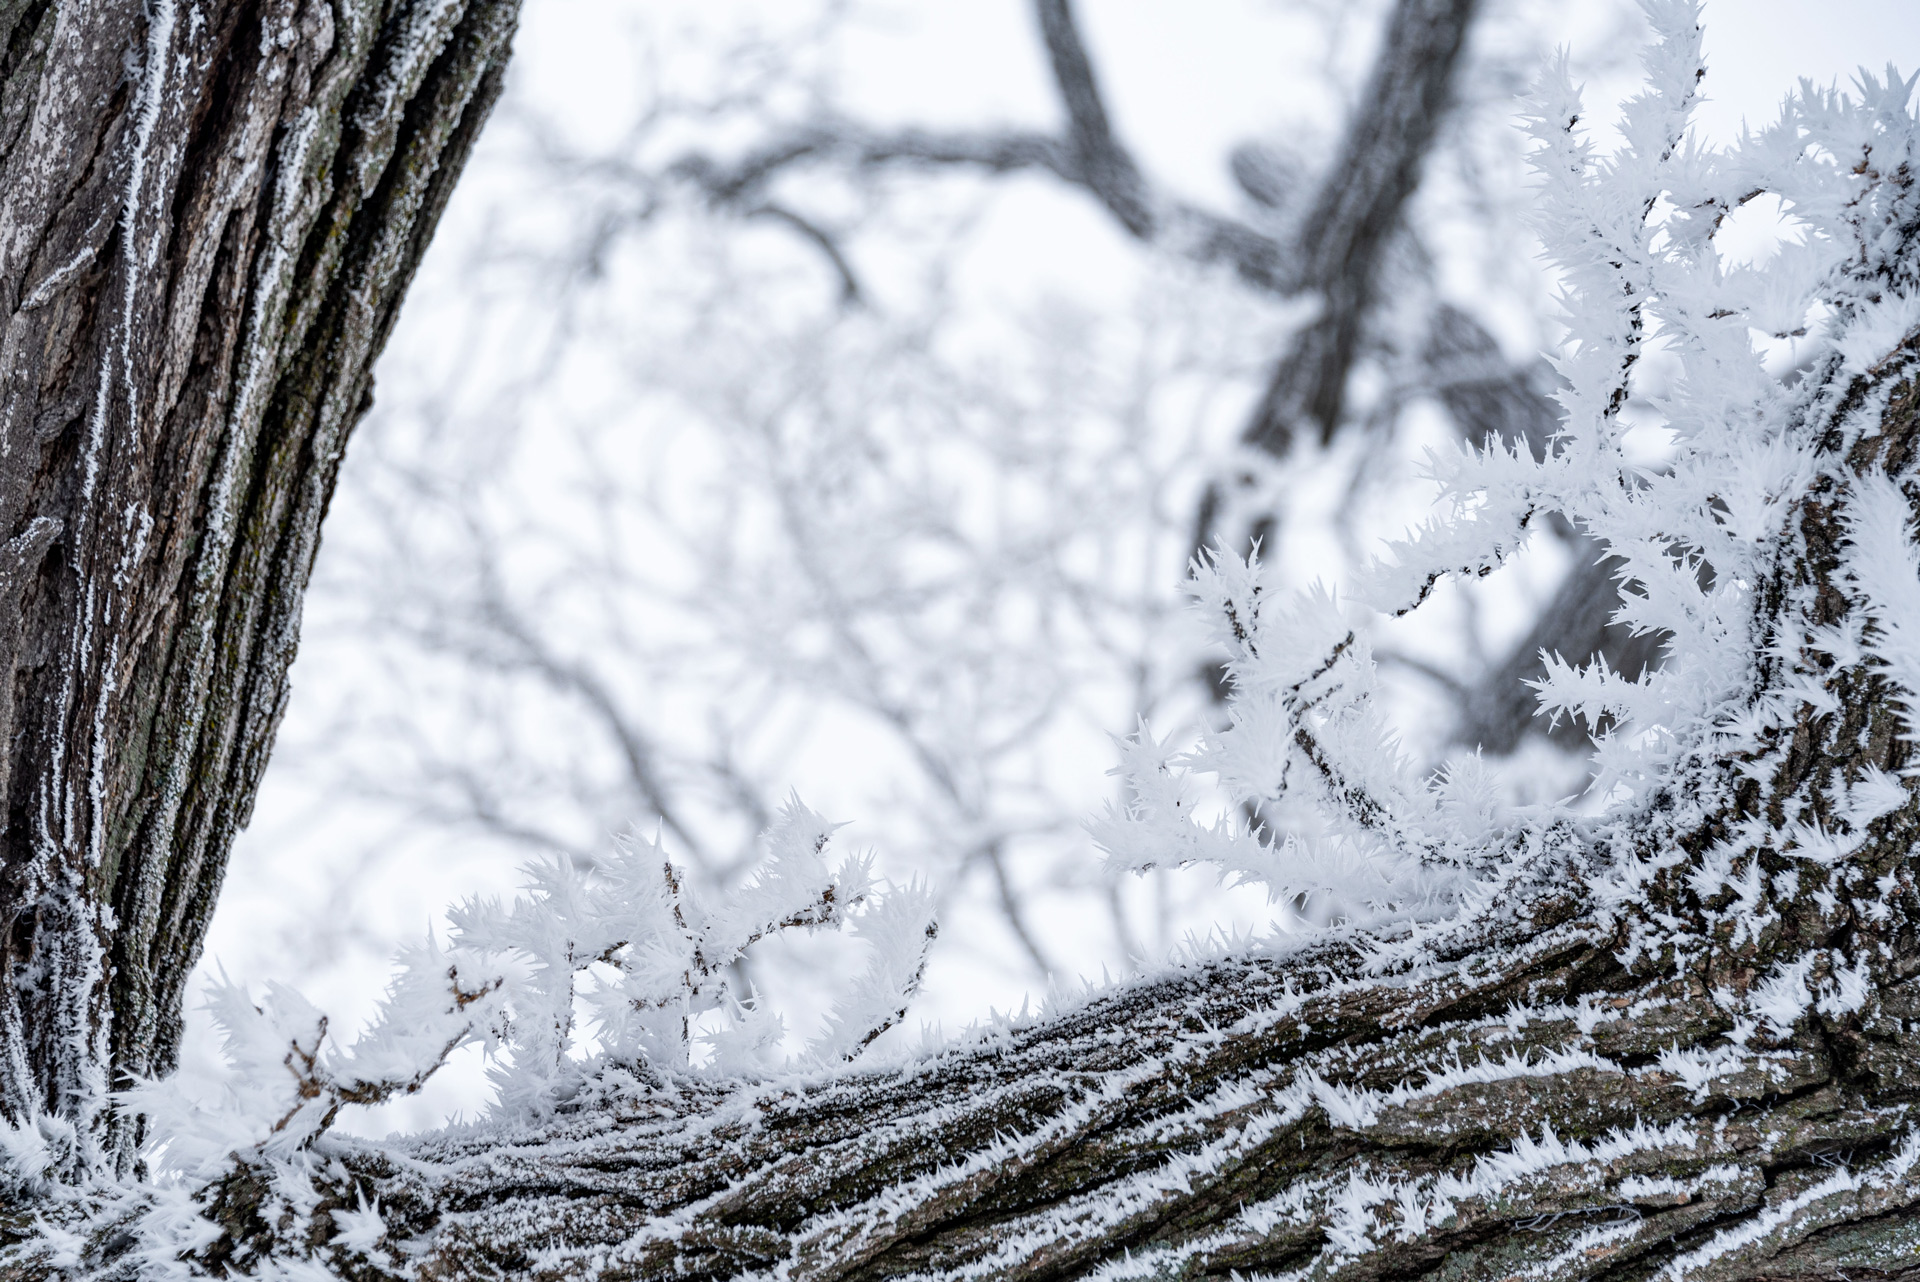 Frosty oak tree in winter